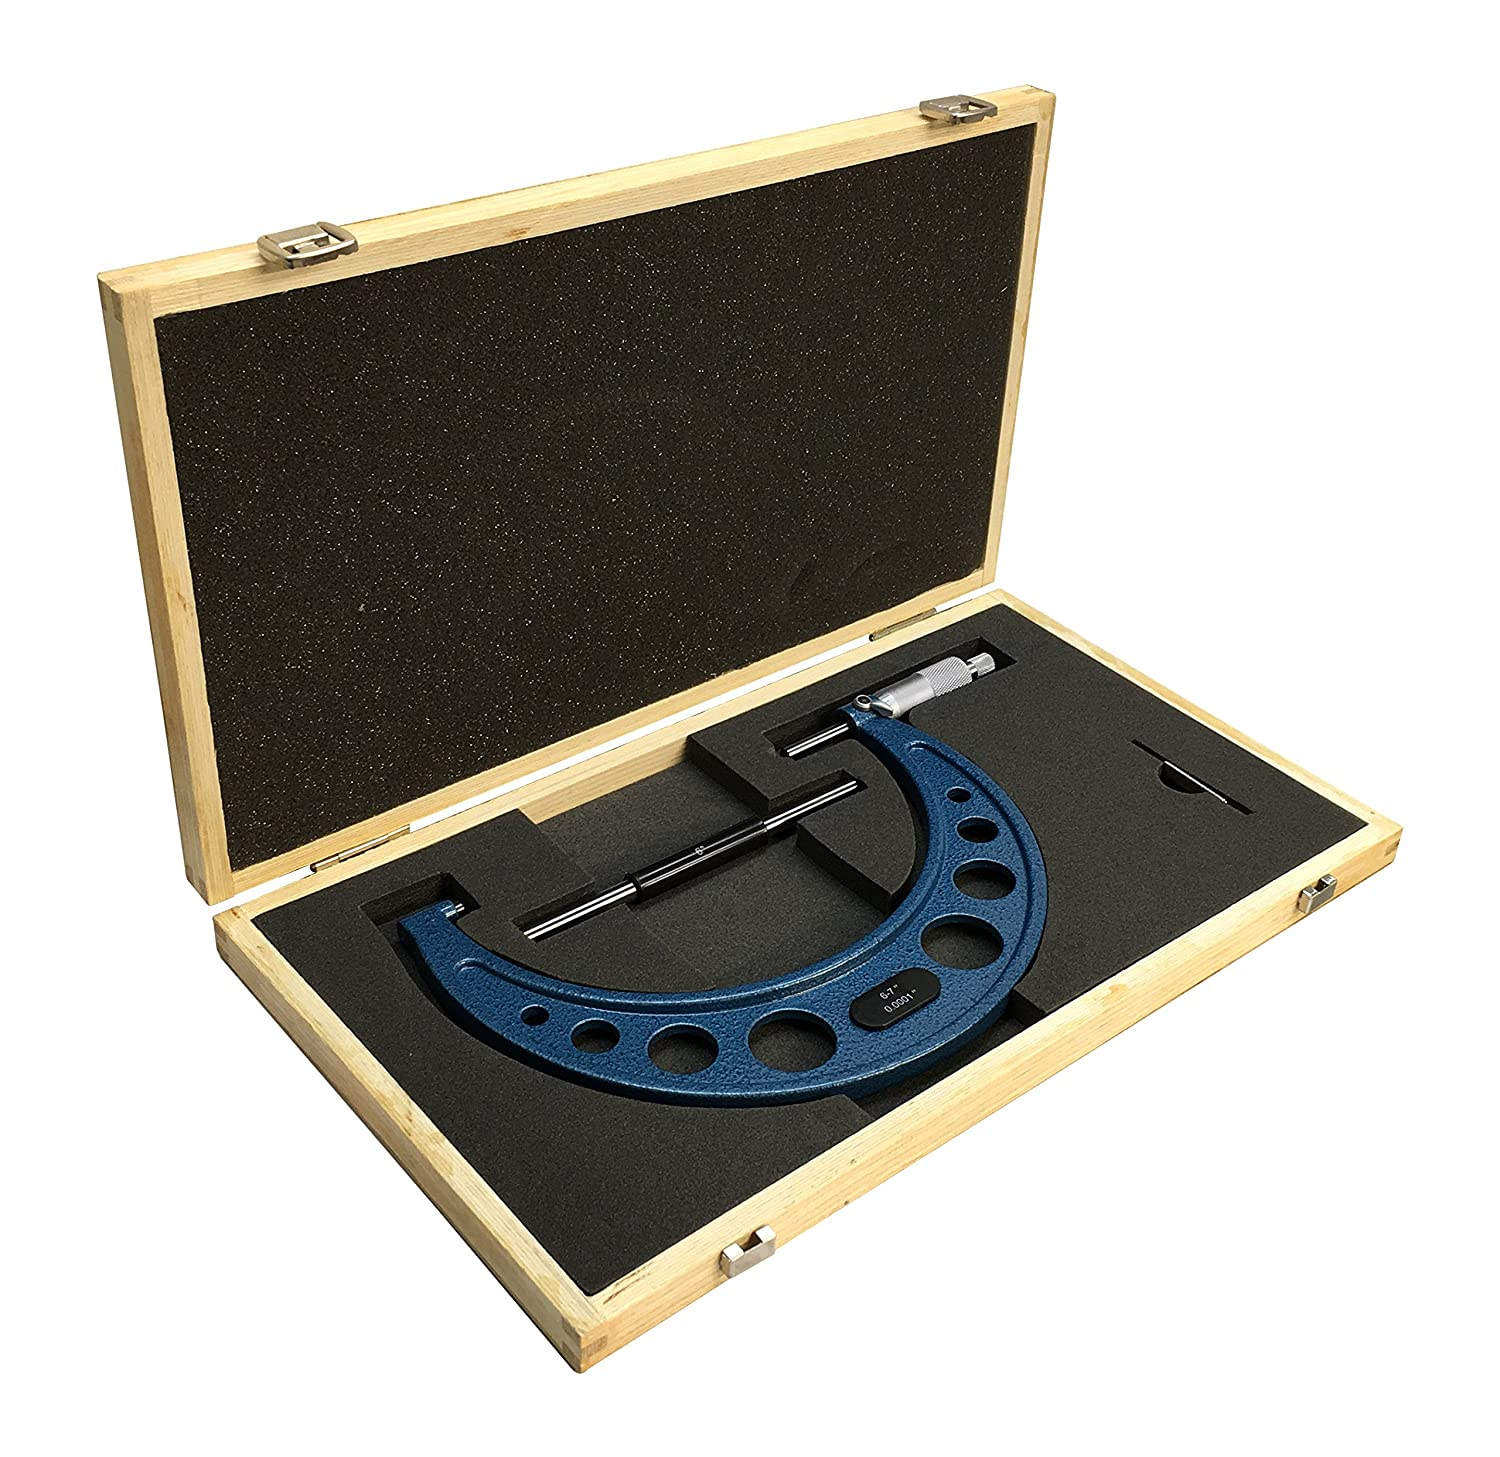 6-7 Inch Outside Micrometer .0001 Inch Graduation Wooden Case Solid Metal Frame